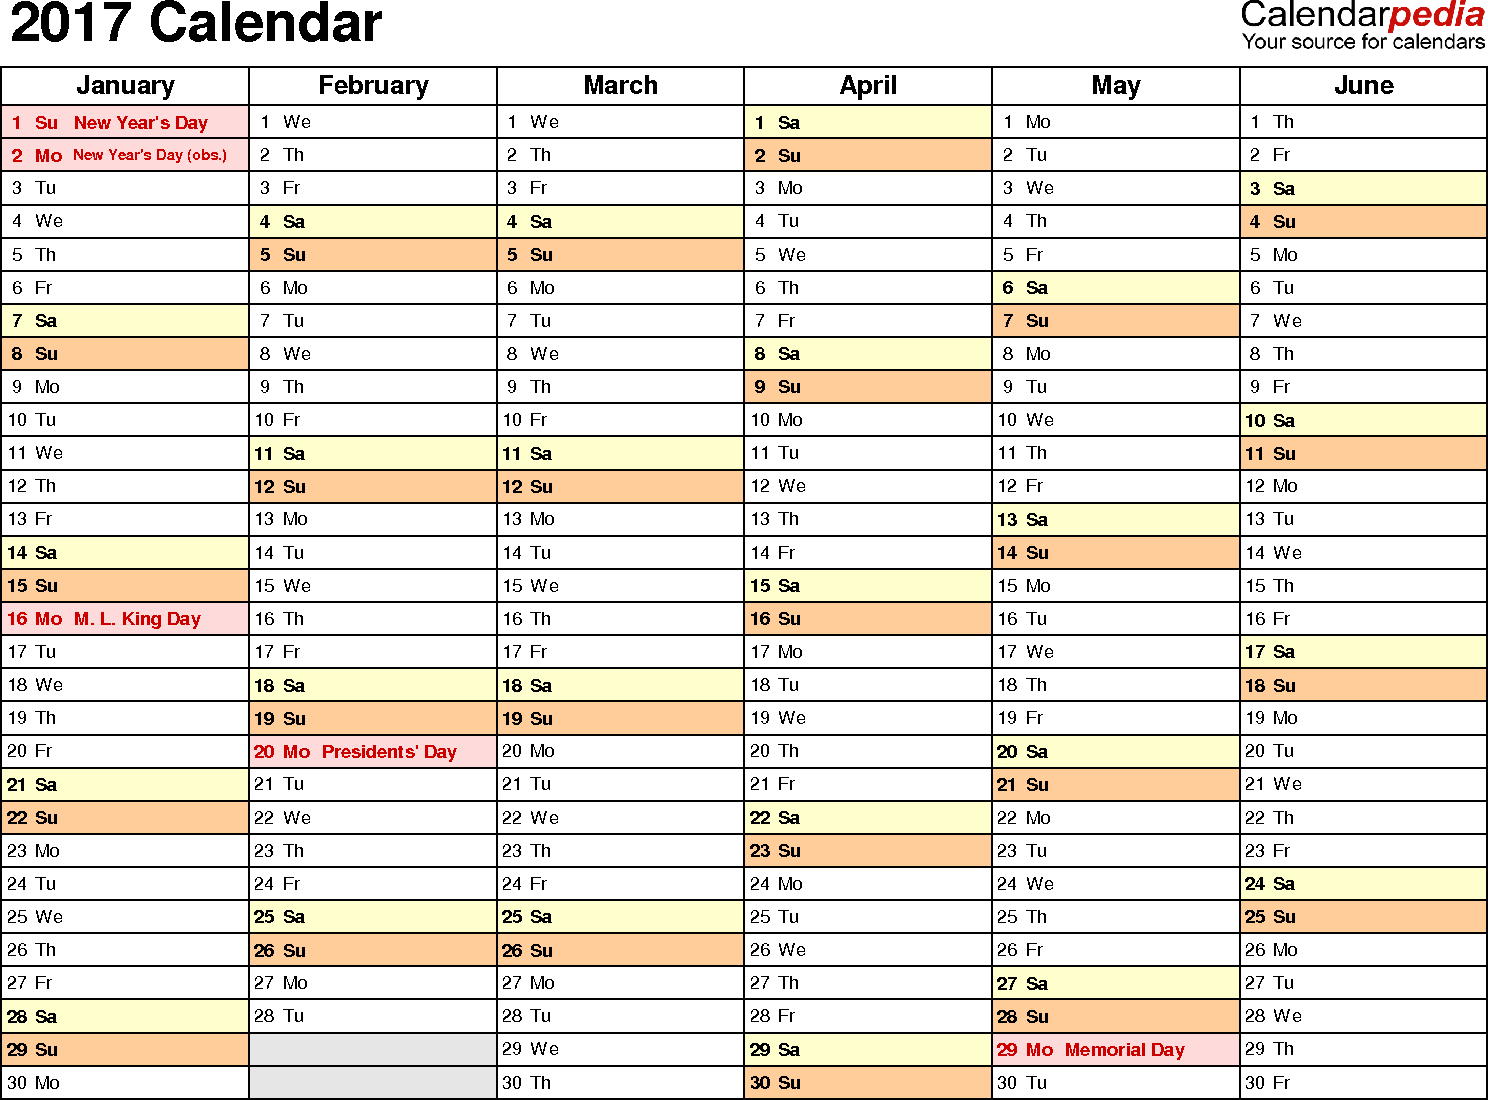 Ediblewildsus  Stunning  Calendar  Download  Free Printable Excel Templates Xls With Goodlooking Template   Calendar For Excel Months Horizontally  Pages Landscape Orientation With Breathtaking What Is A Complex Formula In Excel Also Dynamic Ranges In Excel In Addition How To Create A Division Formula In Excel And Excel Find Duplicates In One Column As Well As Compatibility Mode Excel  Additionally Free Excel Downloads From Calendarpediacom With Ediblewildsus  Goodlooking  Calendar  Download  Free Printable Excel Templates Xls With Breathtaking Template   Calendar For Excel Months Horizontally  Pages Landscape Orientation And Stunning What Is A Complex Formula In Excel Also Dynamic Ranges In Excel In Addition How To Create A Division Formula In Excel From Calendarpediacom